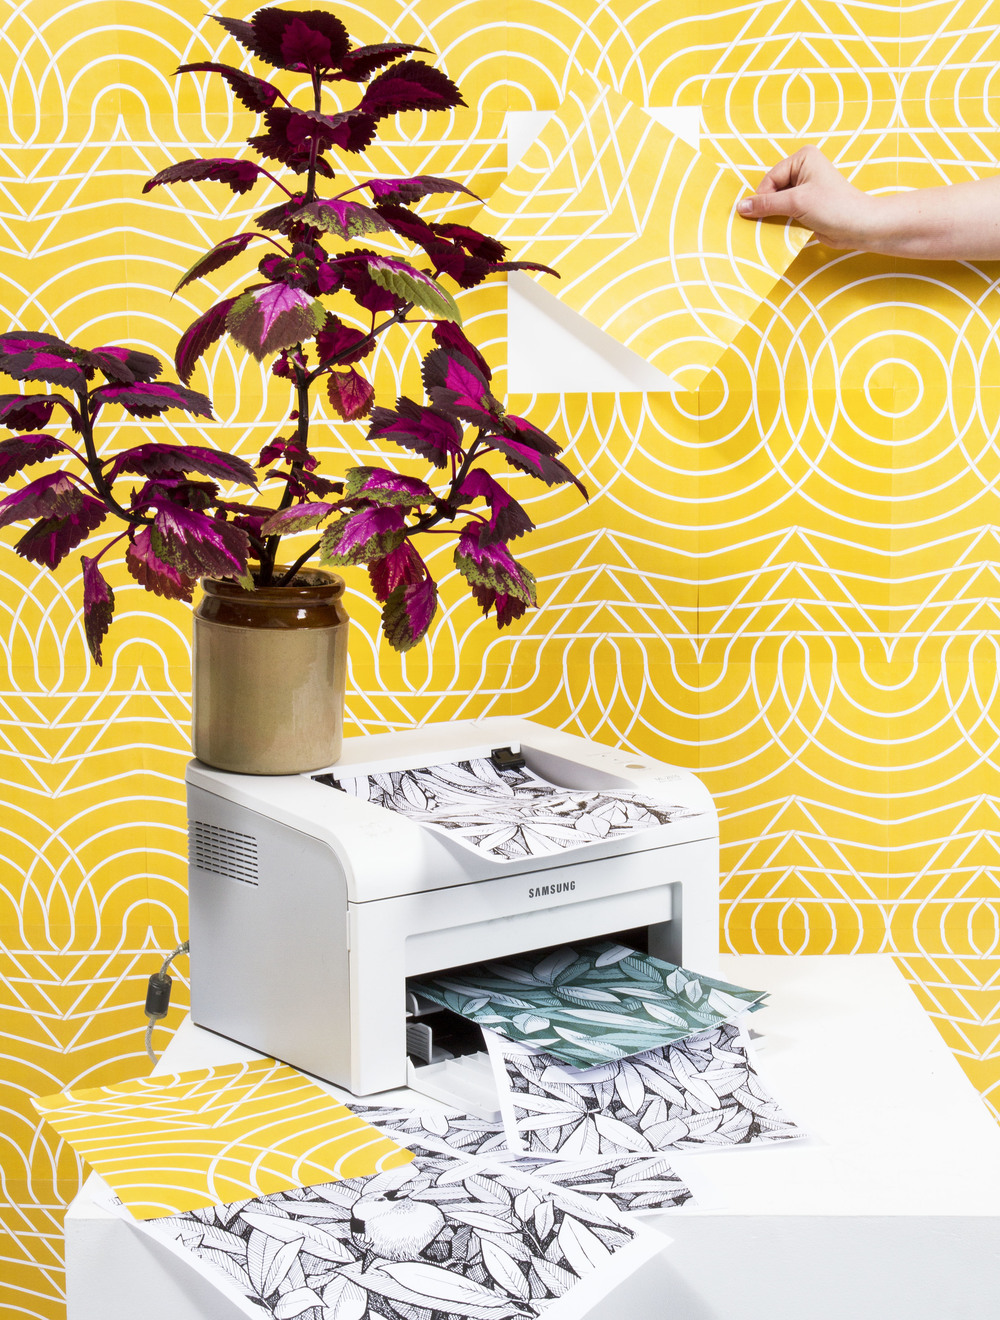 The Pattern Printer Project is created by  Julia Groth , MFA Design at HDK, Academy of Design and Crafts, Gothenburg.